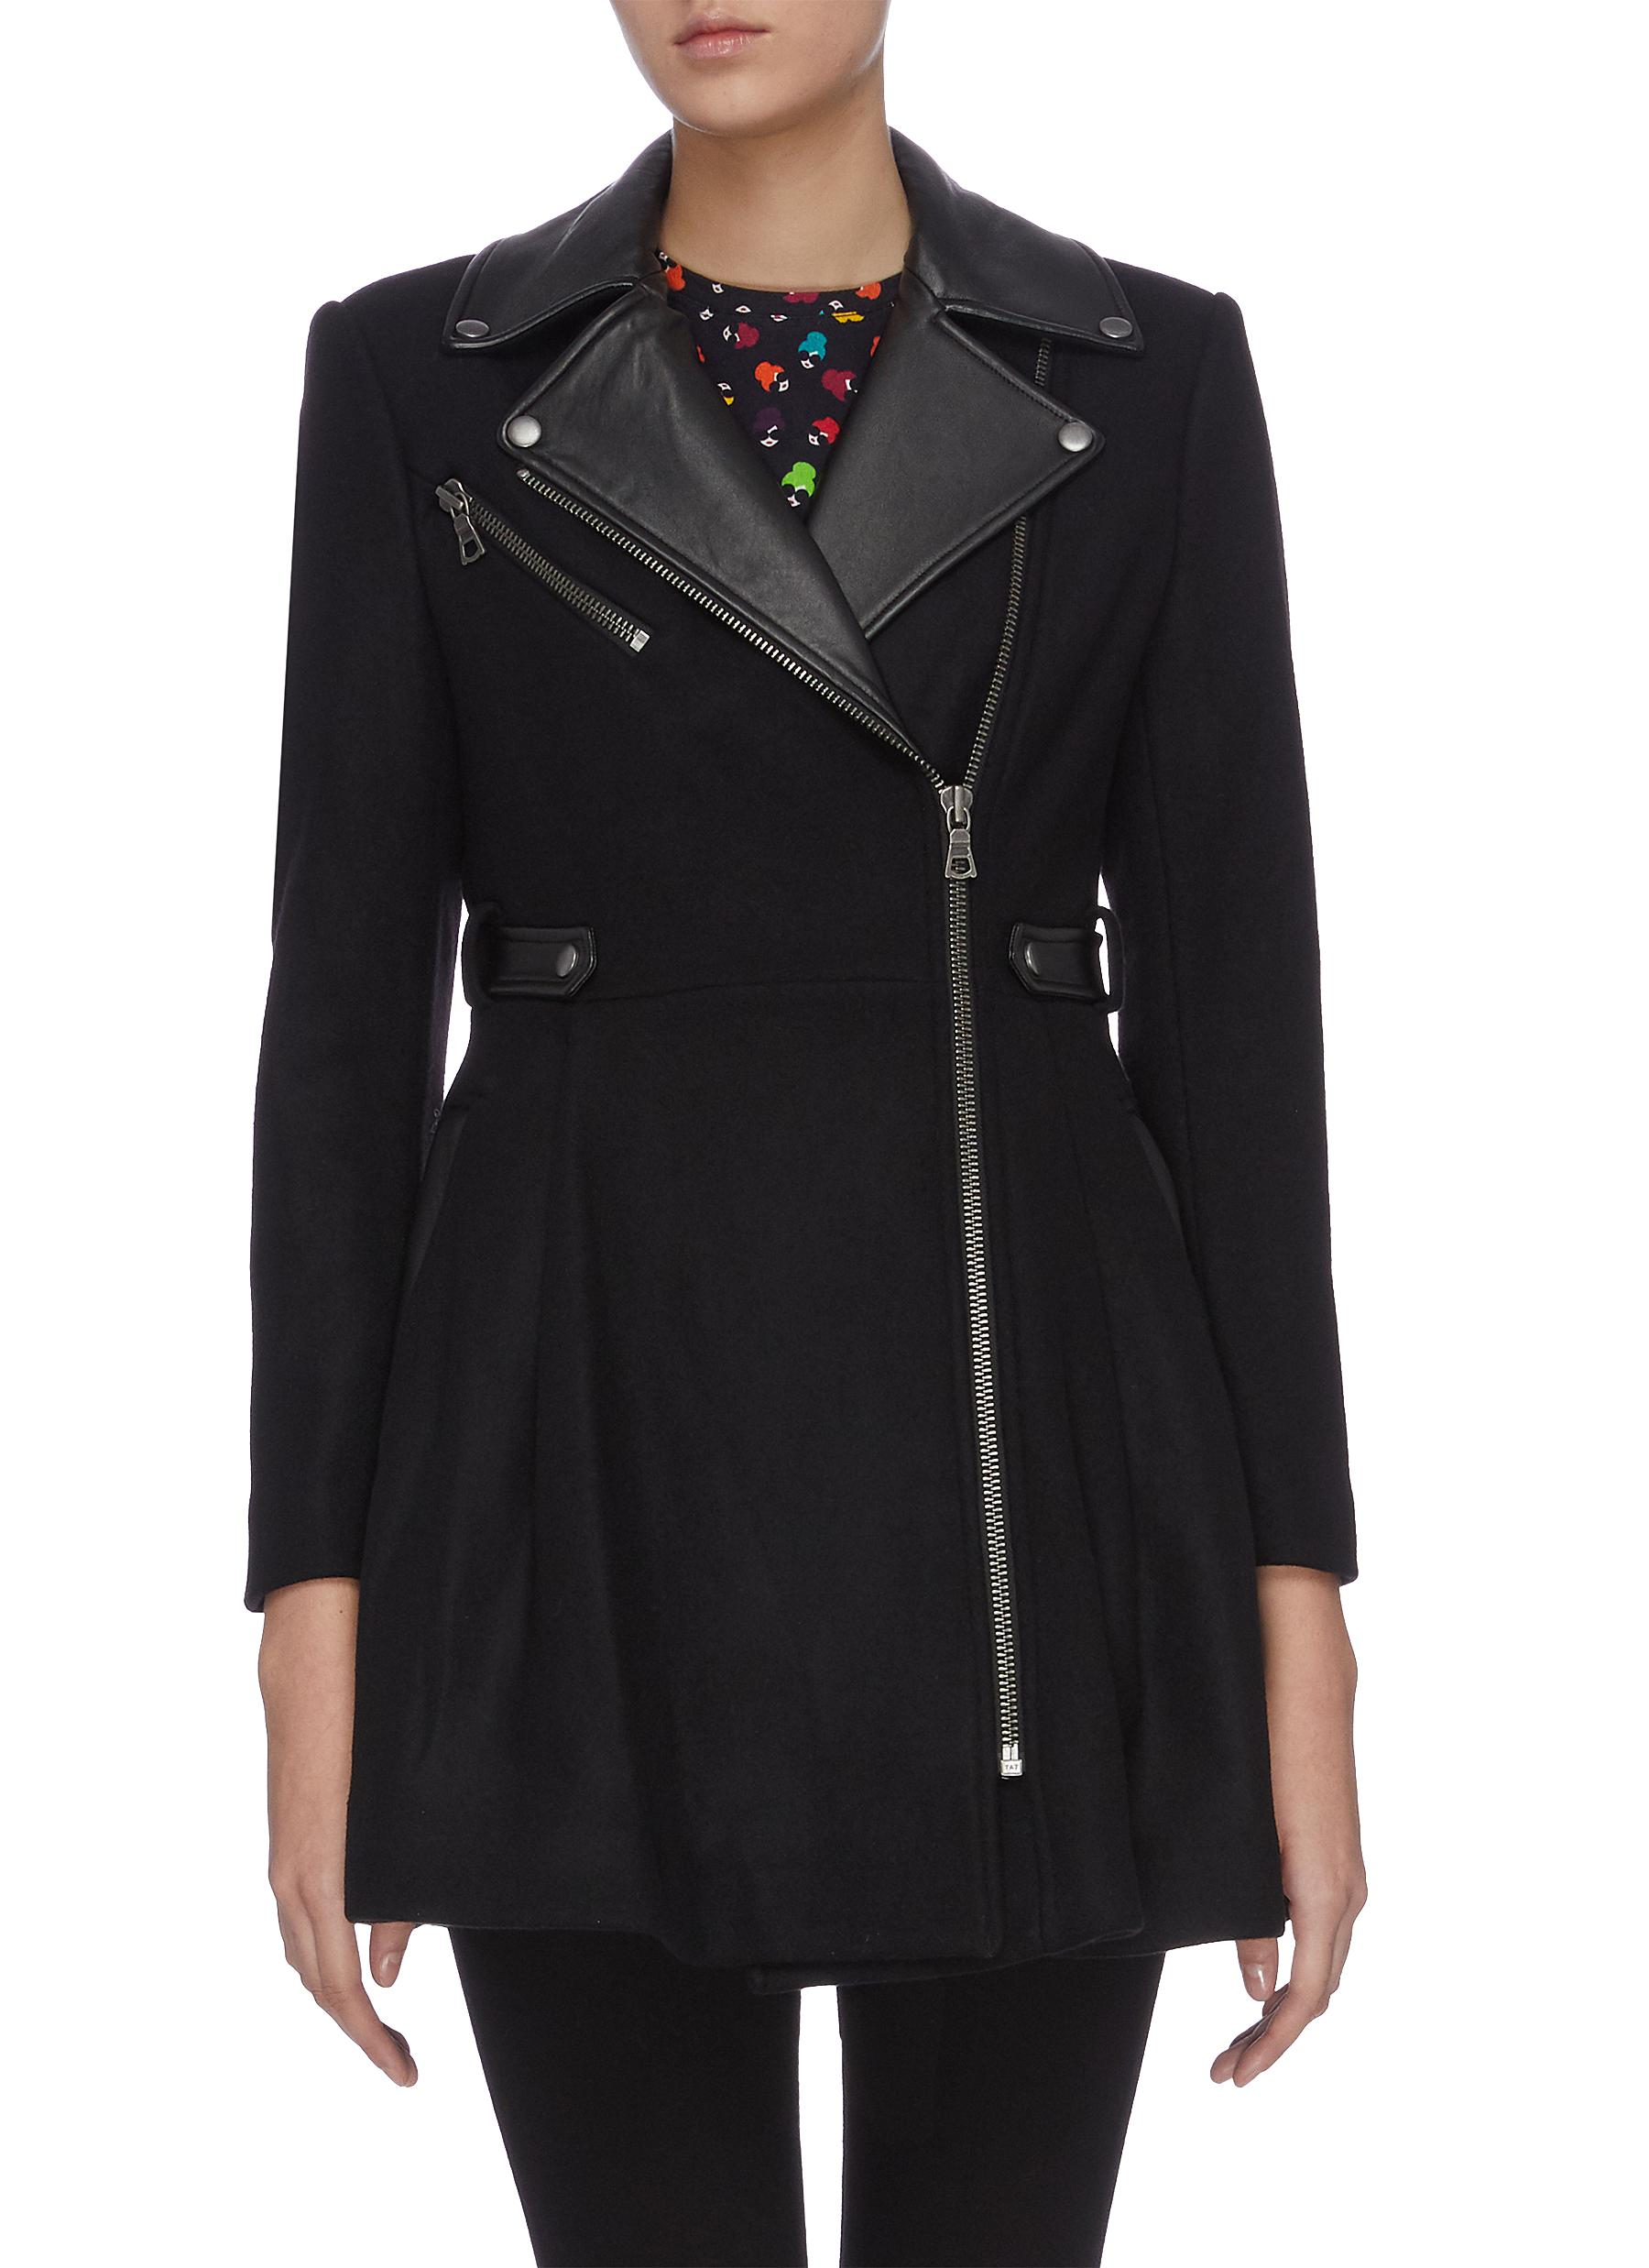 Cody leather panelled coat by Alice + Olivia